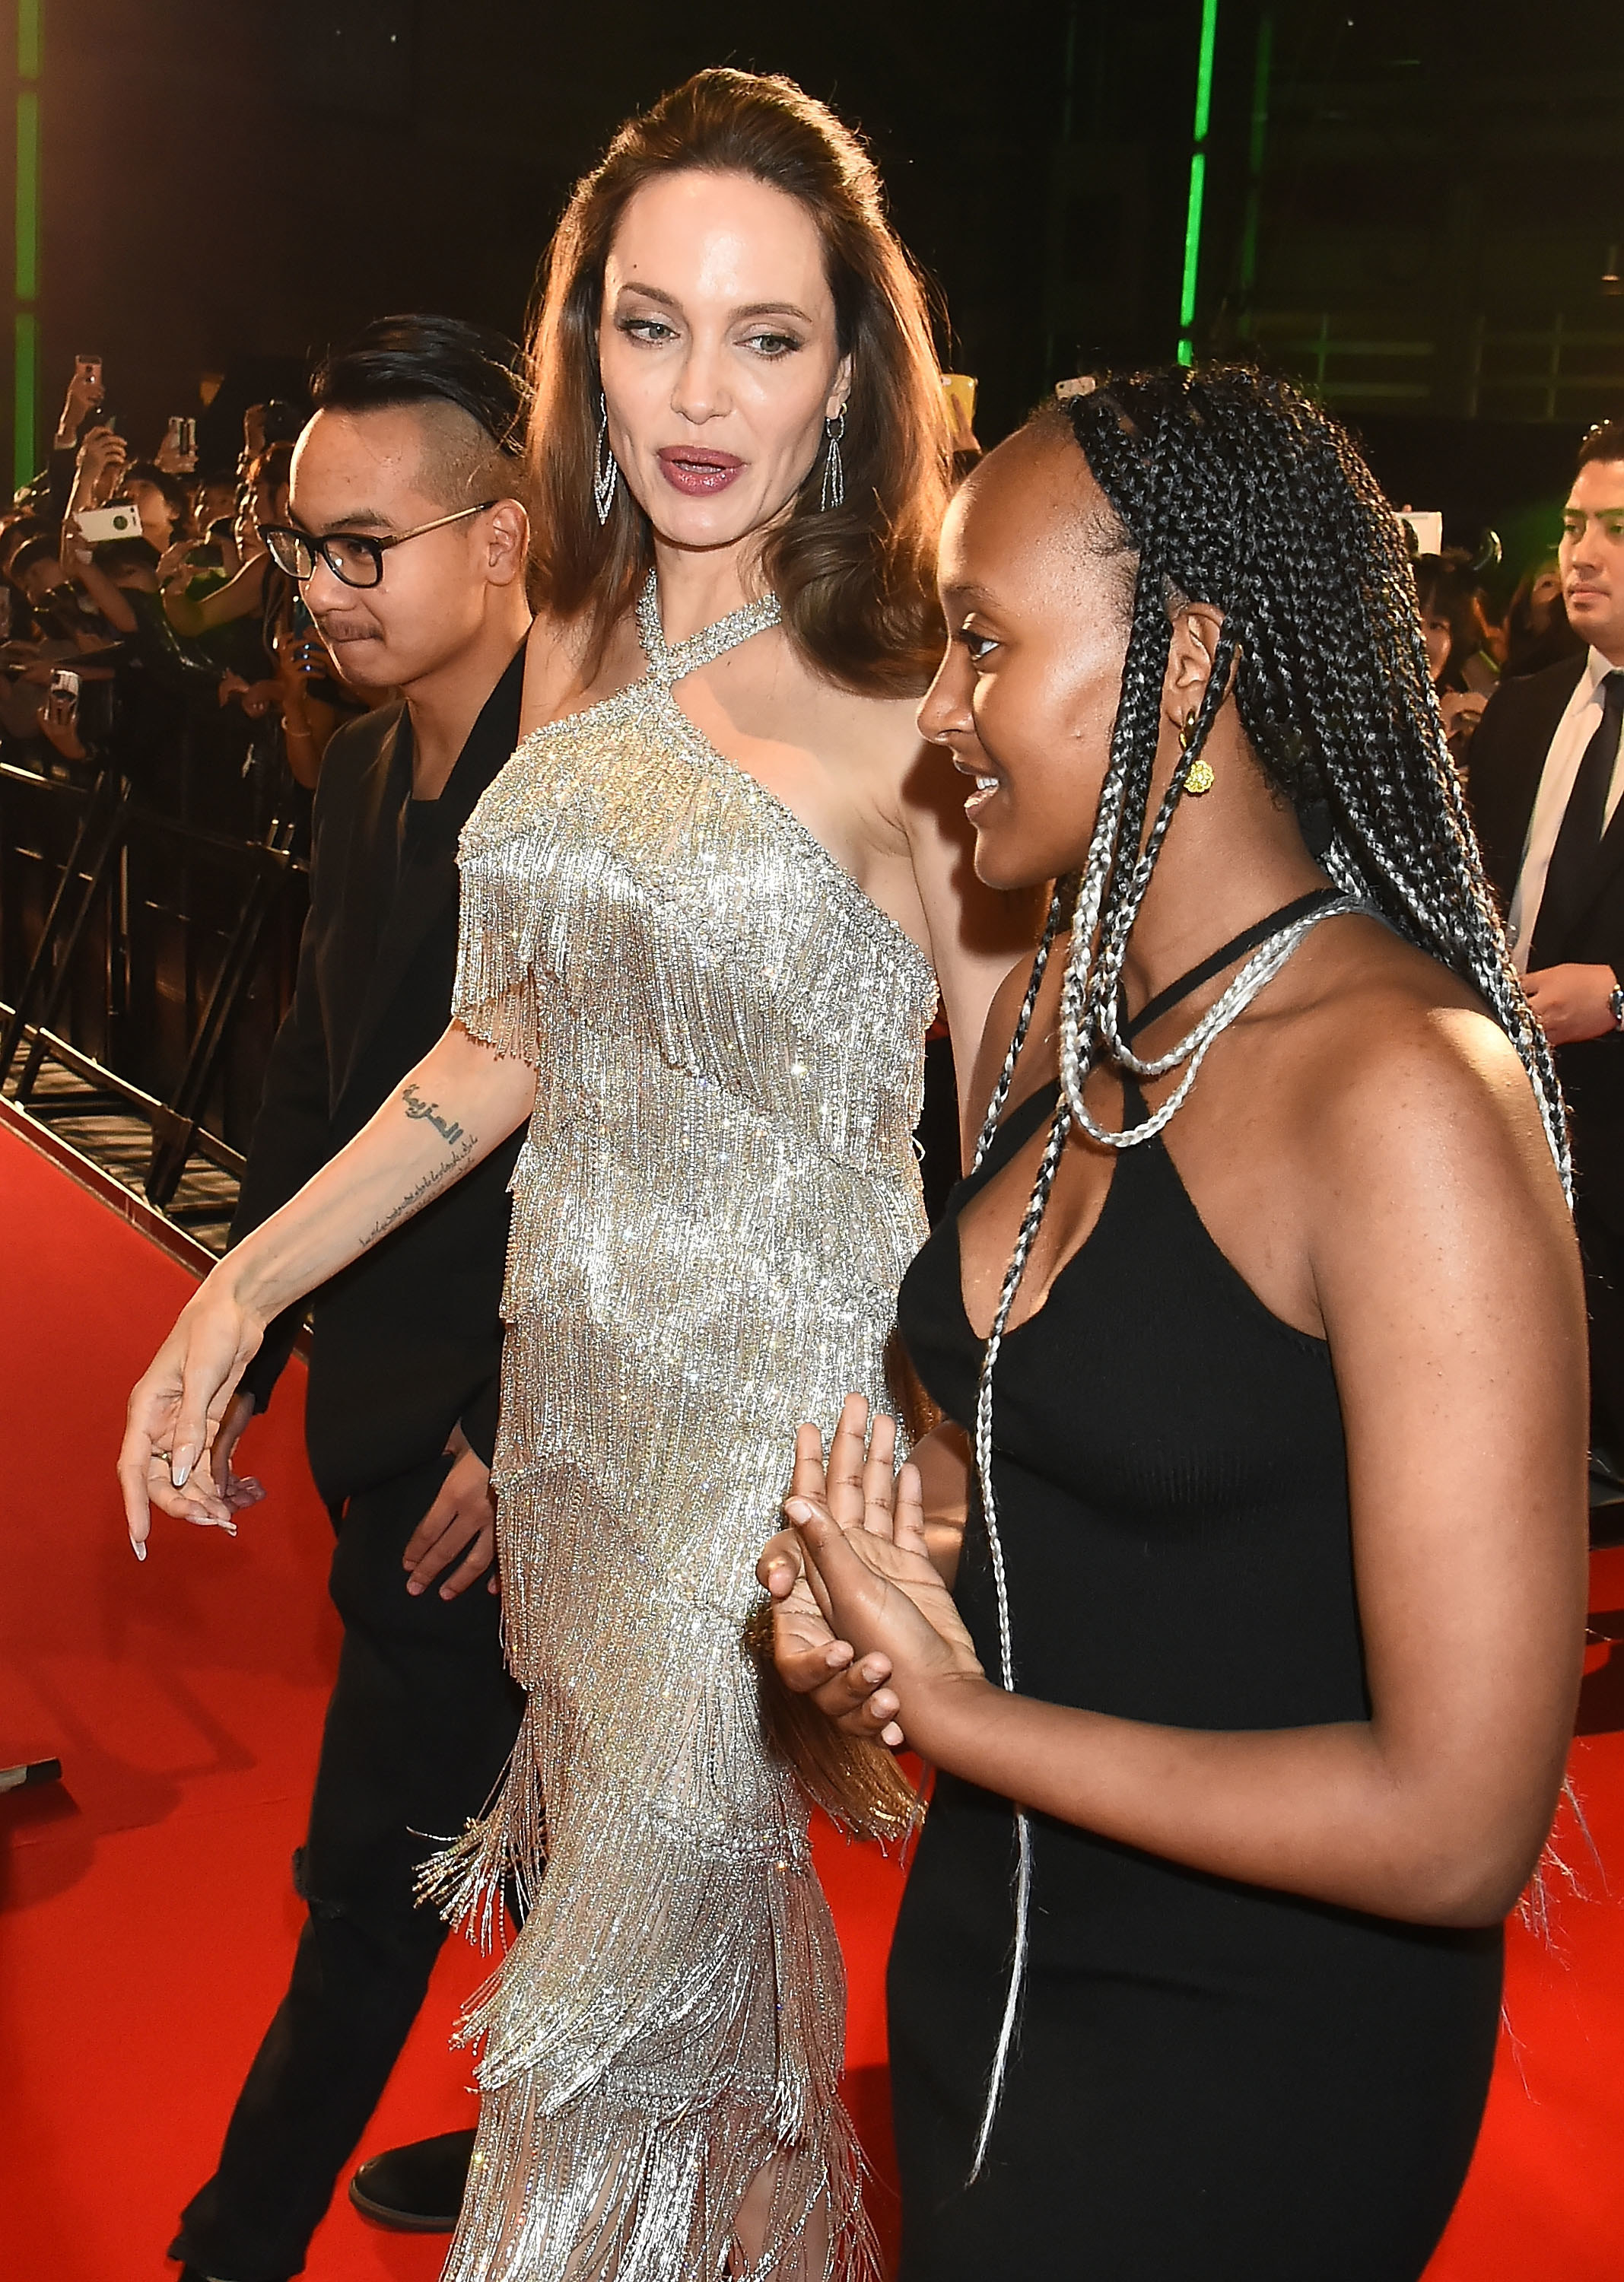 Zahara Marley Jolie-Pitt, Angelina Jolie, and Maddox Jolie-Pitt attend the Japan premiere of 'Maleficent: Mistress of Evil' at Roppongi Hills arena on October 3, 2019, in Tokyo, Japan